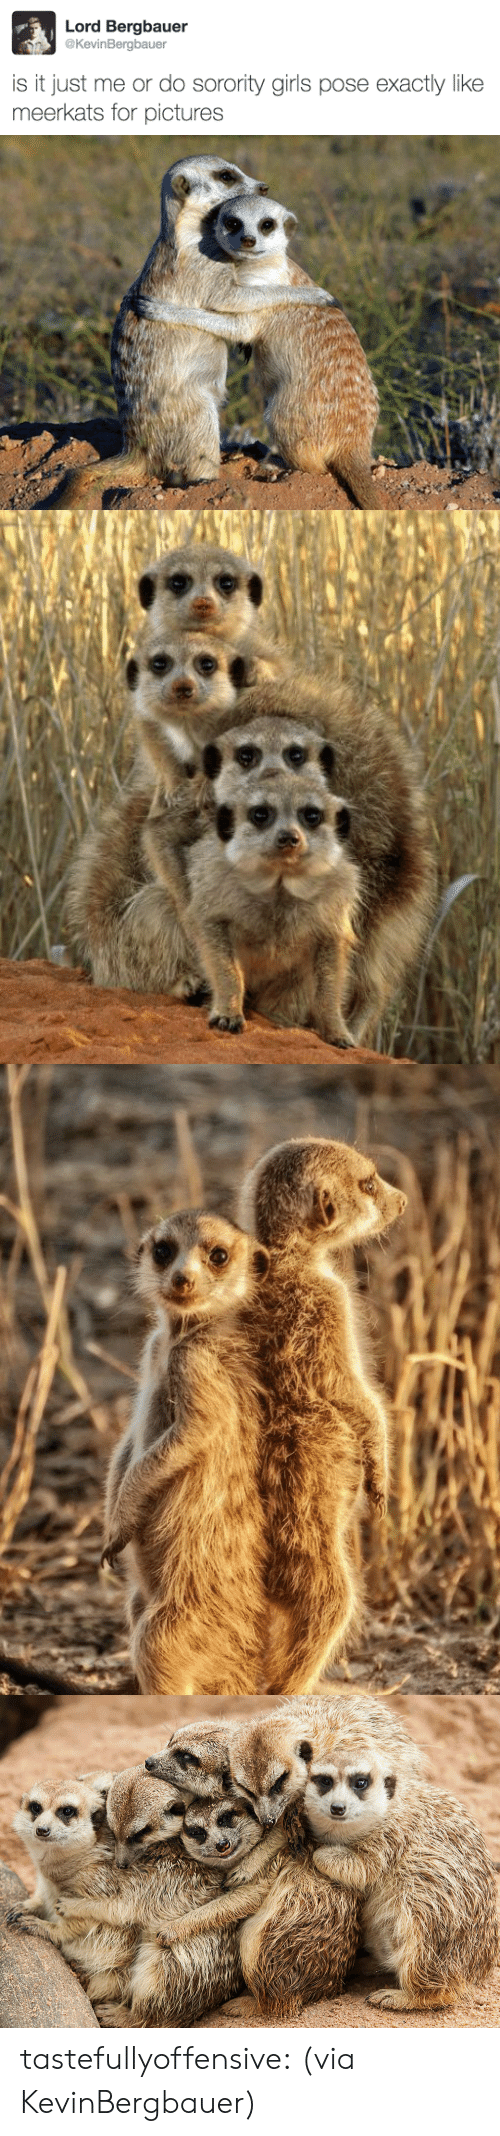 Sorority: Lord Bergbauer  @KevinBergbauer  is it just me or do sorority girls pose exactly like  meerkats for pictures tastefullyoffensive:  (via KevinBergbauer)